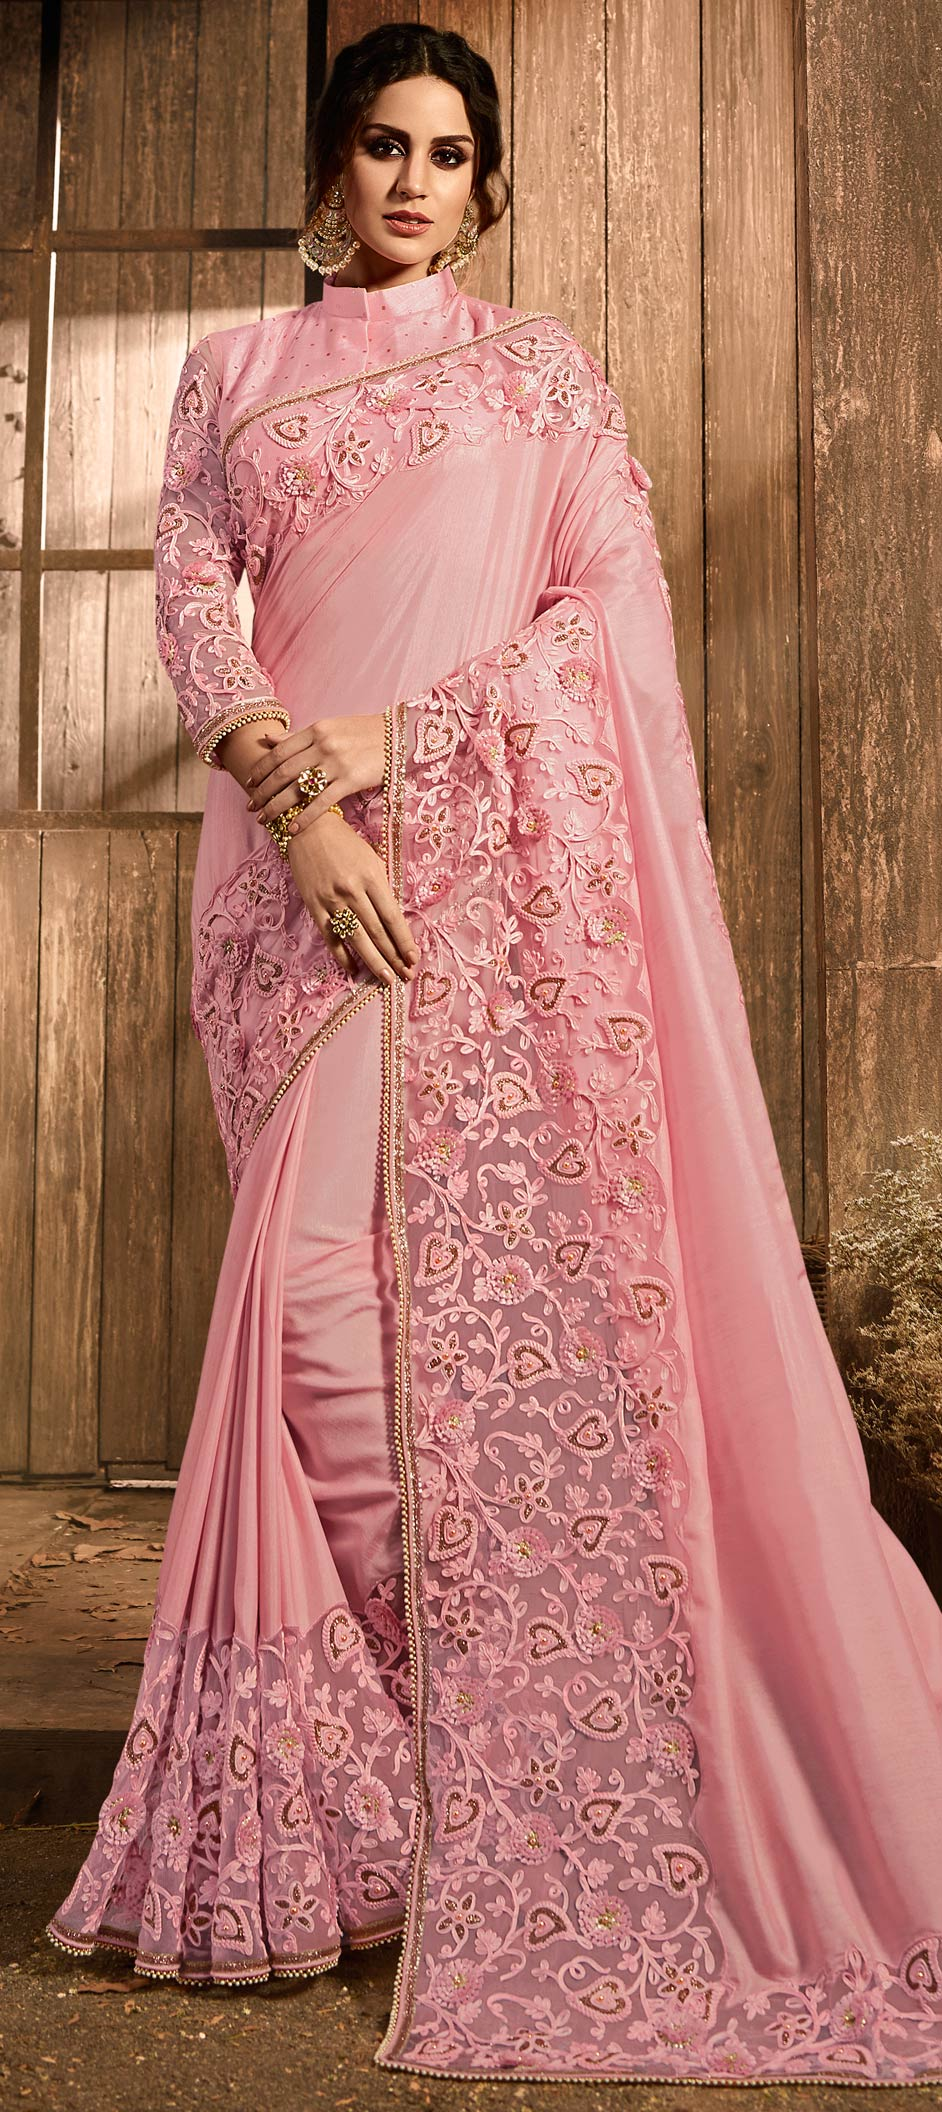 Net Bollywood Saree in Pink and Majenta with Lace work